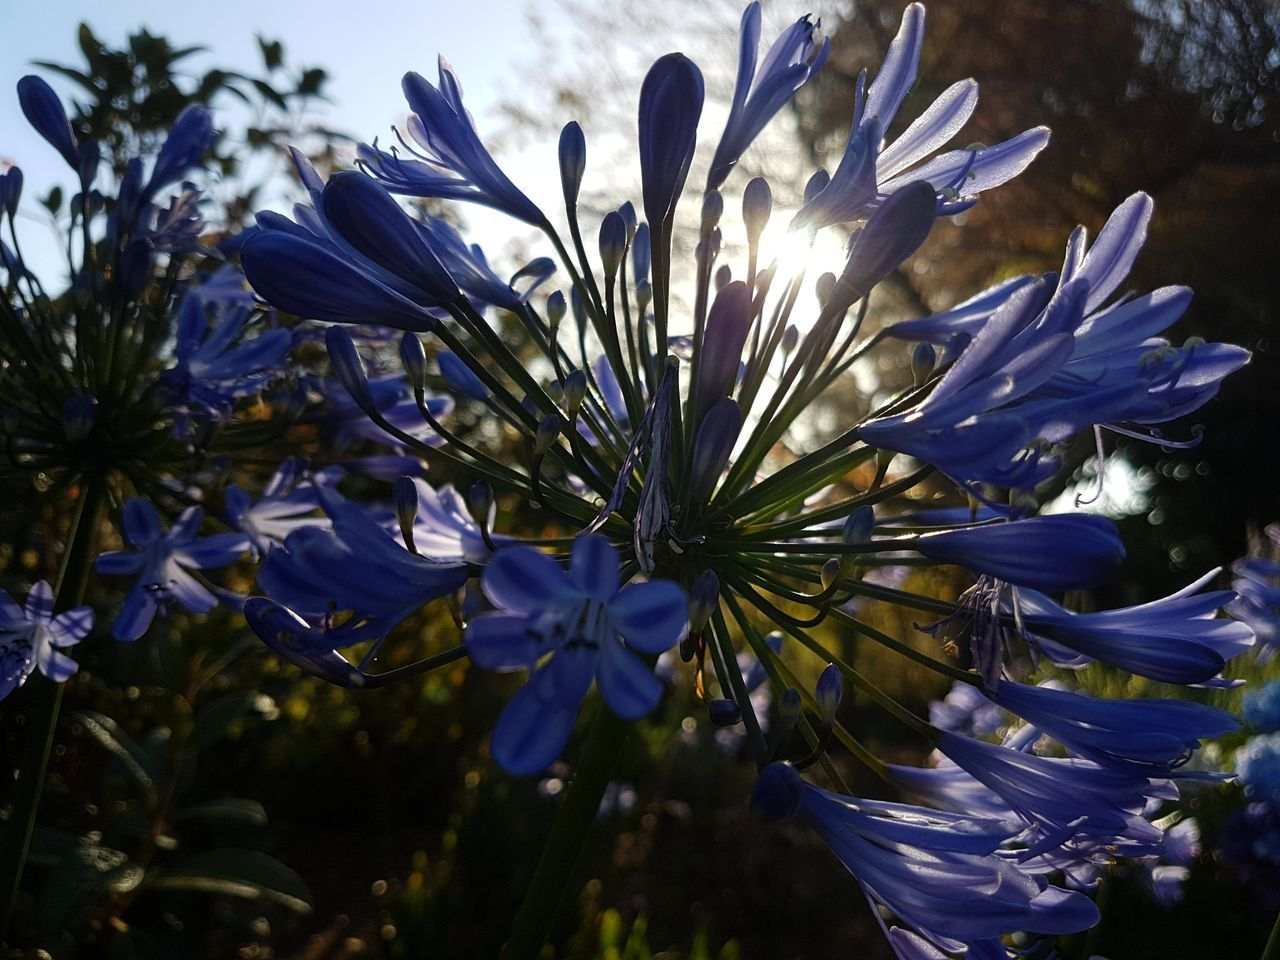 [TFC] So many angles, so many good perspectives; but always the same plant, isn't it like life? Wonderful... Growth Flower Nature Agapanthus Plant Close-up Outdoors No People Beauty In Nature Fragility Freshness Flower Head Day Enjoying Life Wonderful Scenics Simplicity Amazing Natural Pistil Growth Freshness Contrast And Lights No Filter, No Edit, Just Photography Perspective